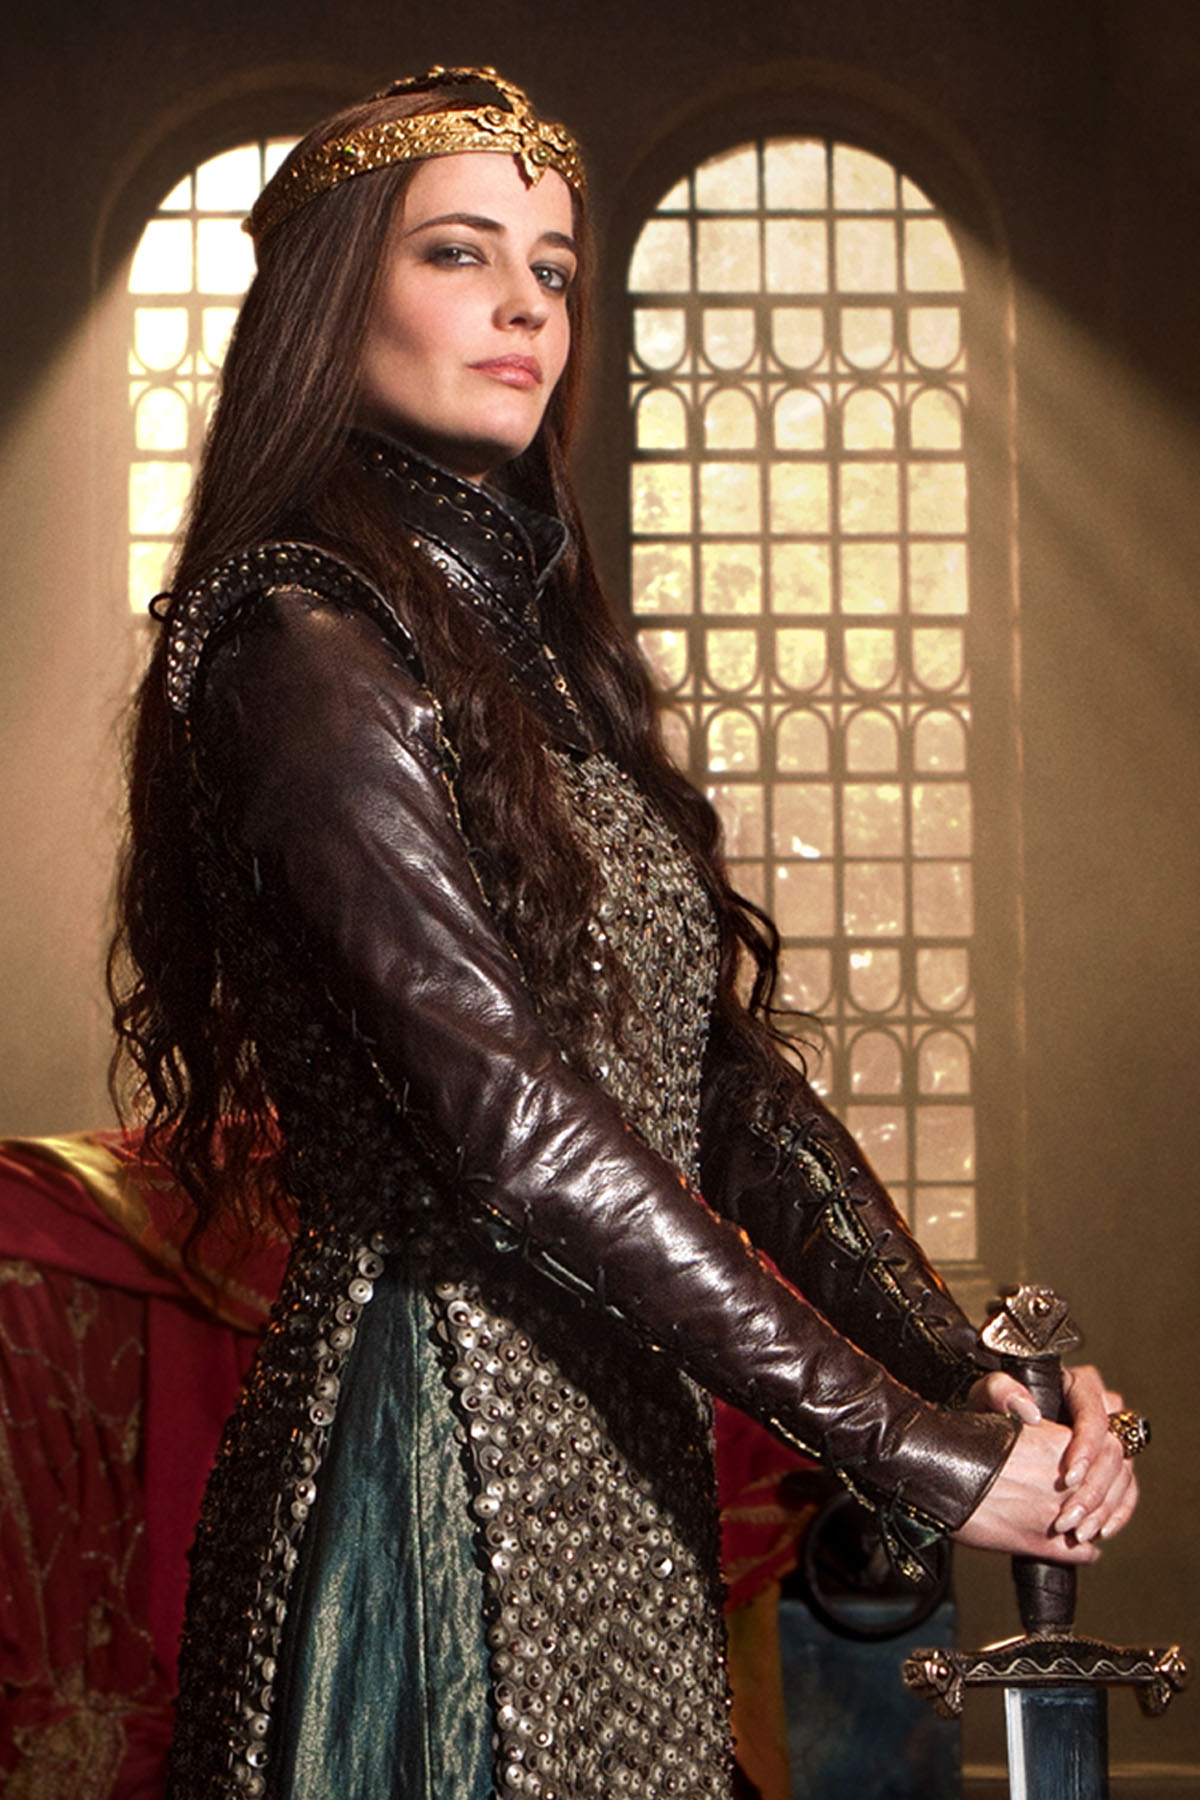 Morgan Le Fay Ultimate Marvel Cinematic Universe Wikia